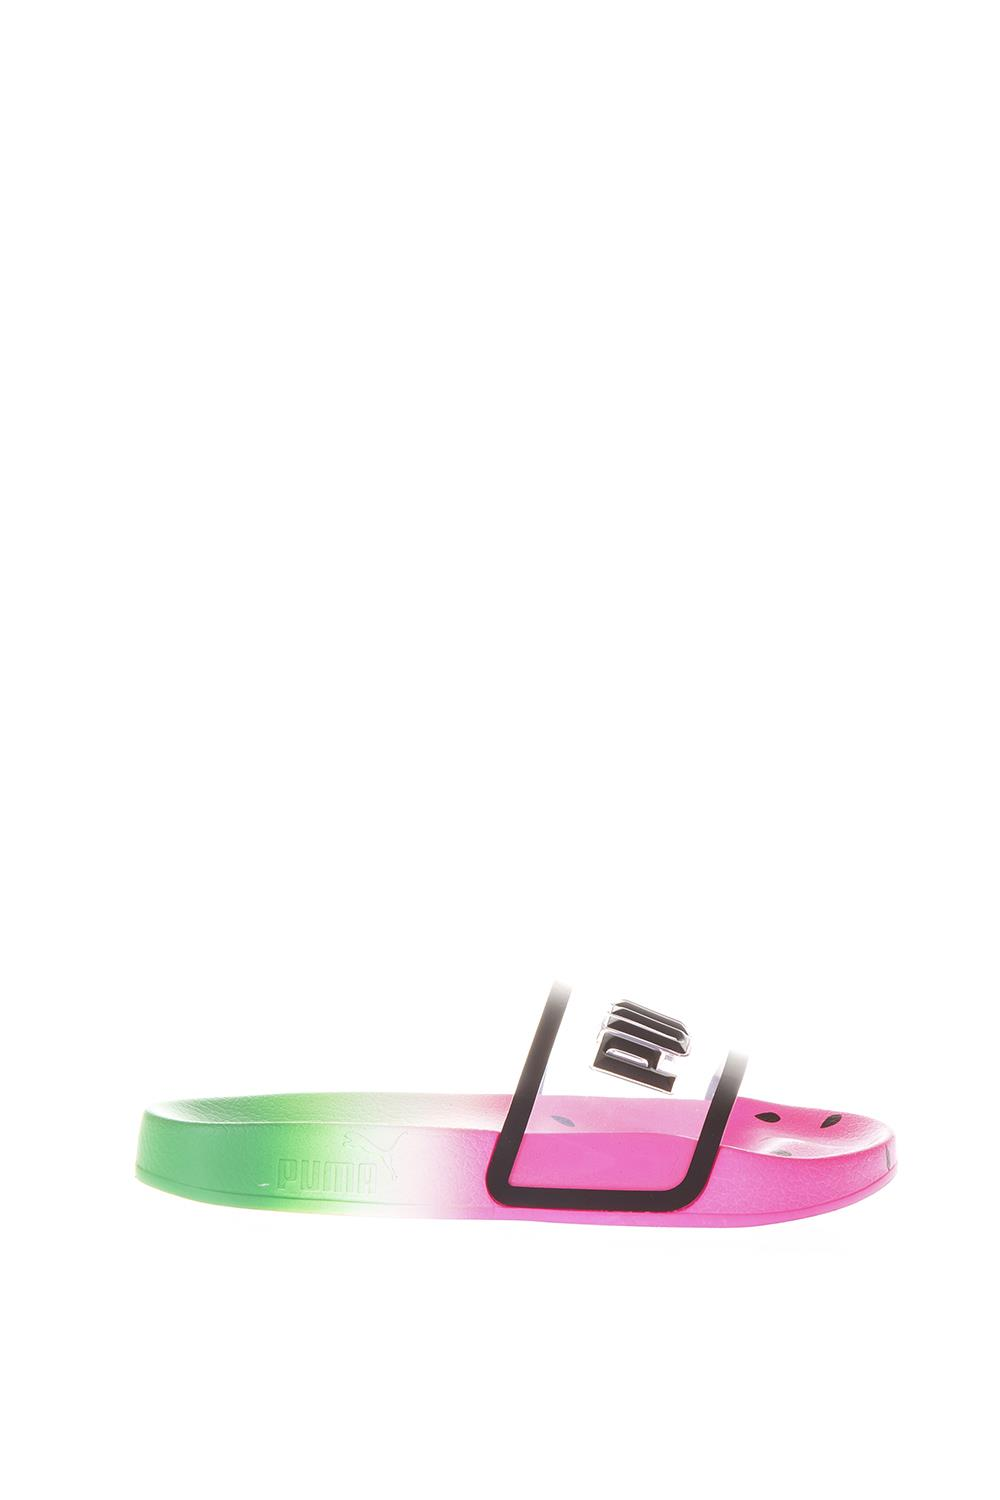 d99c7848942b THREE COLORS RUBBER SLIDES SS 2018 - PUMA X SOPHIA WEBSTER - Boutique  Galiano